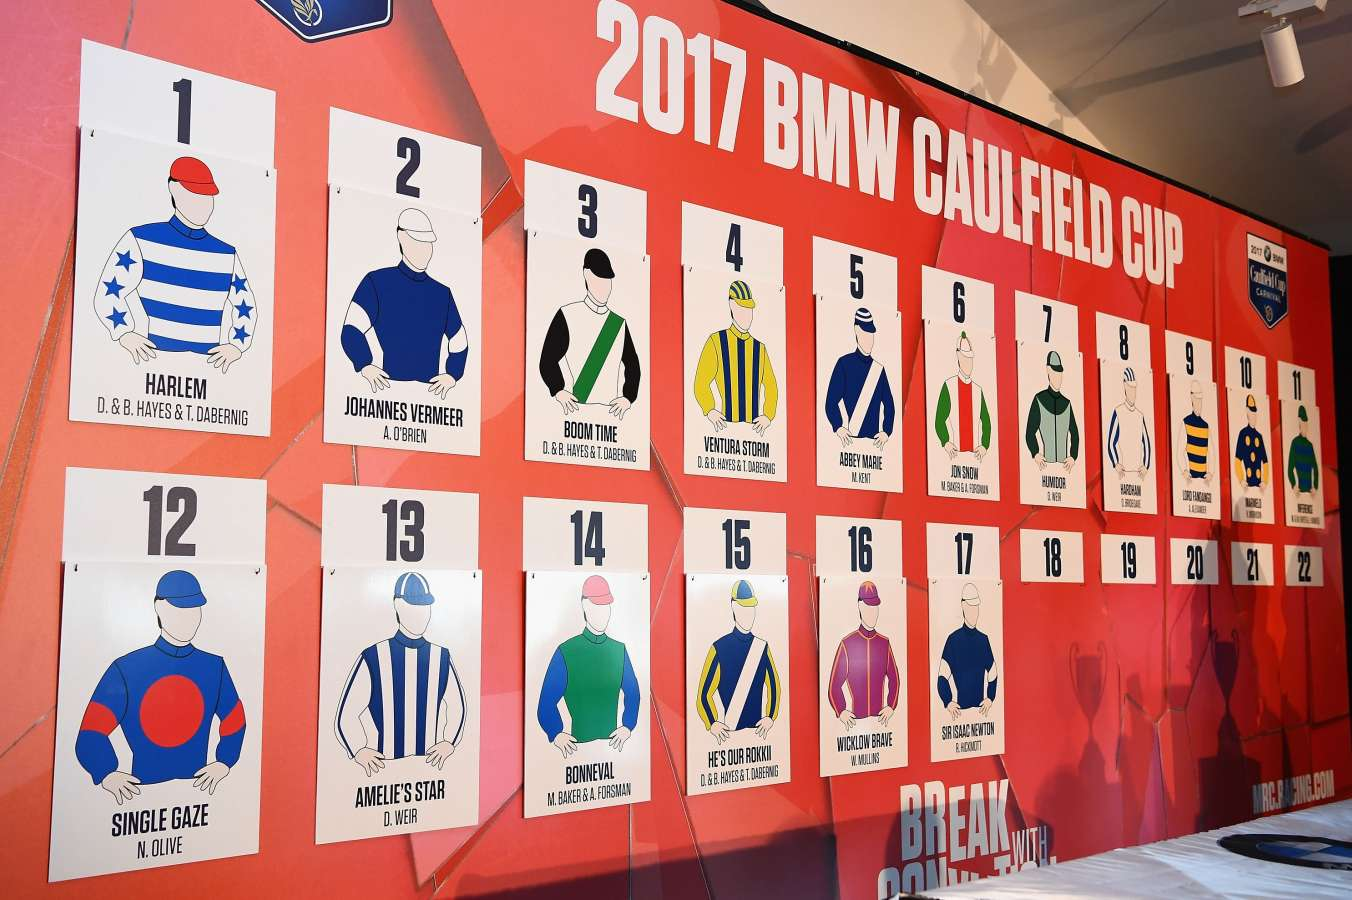 Caulfield Cup preview